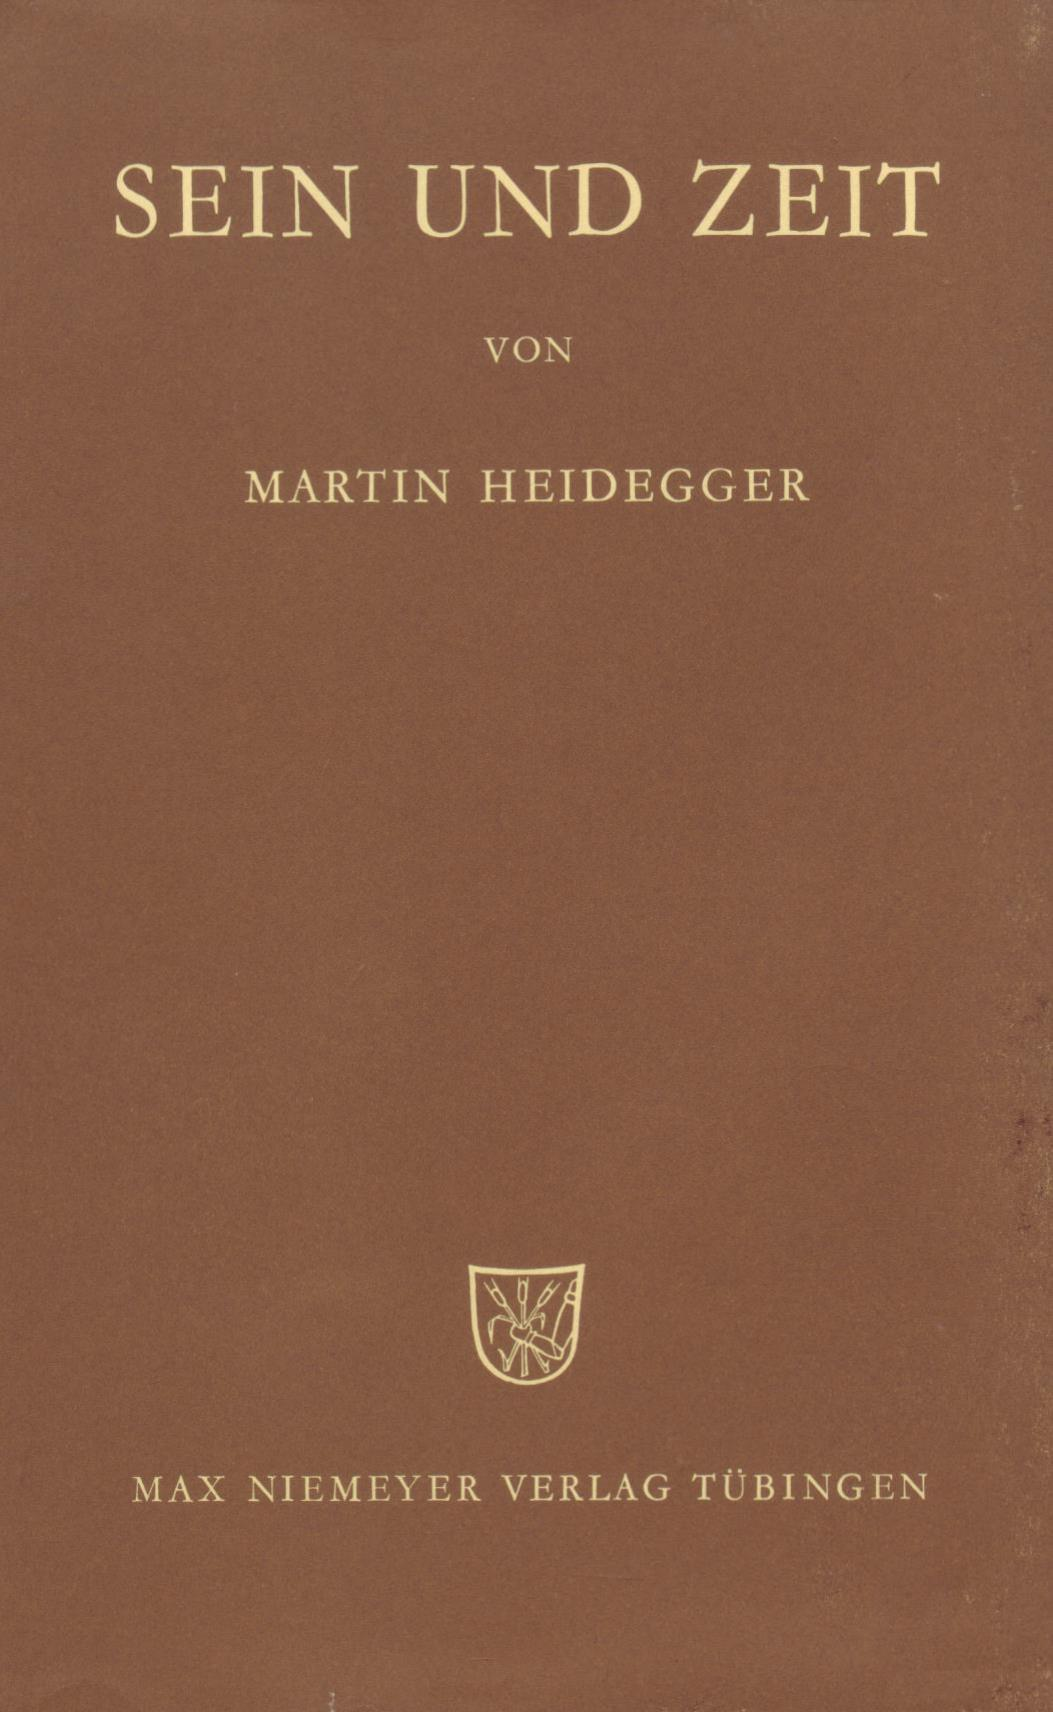 heidegger and sartre an essay on being and place Download and read heidegger and sartre an essay on being and place heidegger and sartre an essay on being and place new updated the heidegger and sartre an essay on being and place from the.